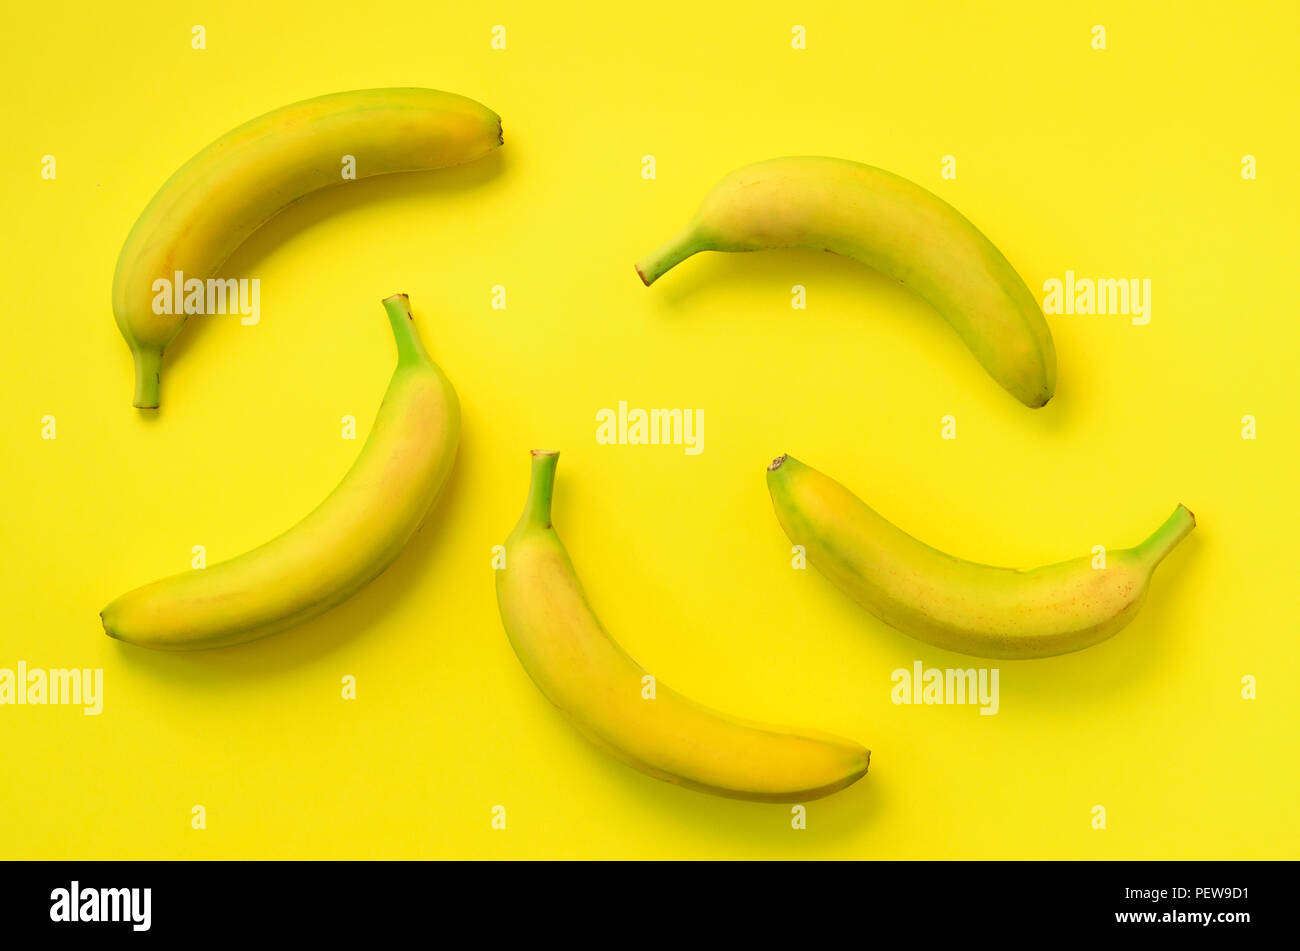 Colorful fruit pattern. Bananas over yellow background. Top view. Pop art design, creative summer concept. Minimal flat lay style - Stock Image